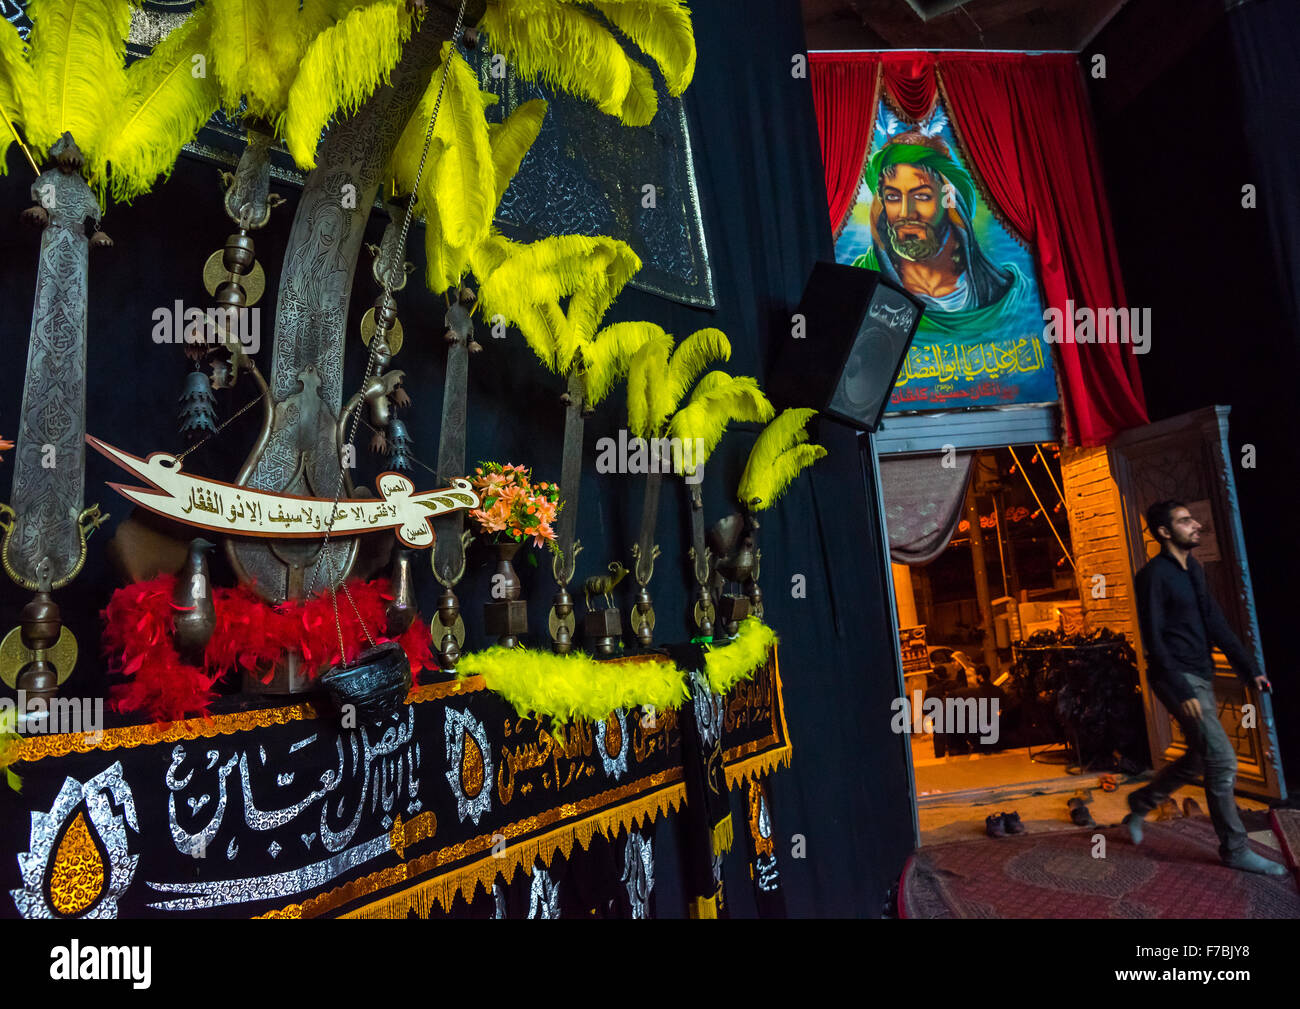 An Alam Near An Imam Hussein Portrait On Ashura, Isfahan Province, Kashan, Iran - Stock Image